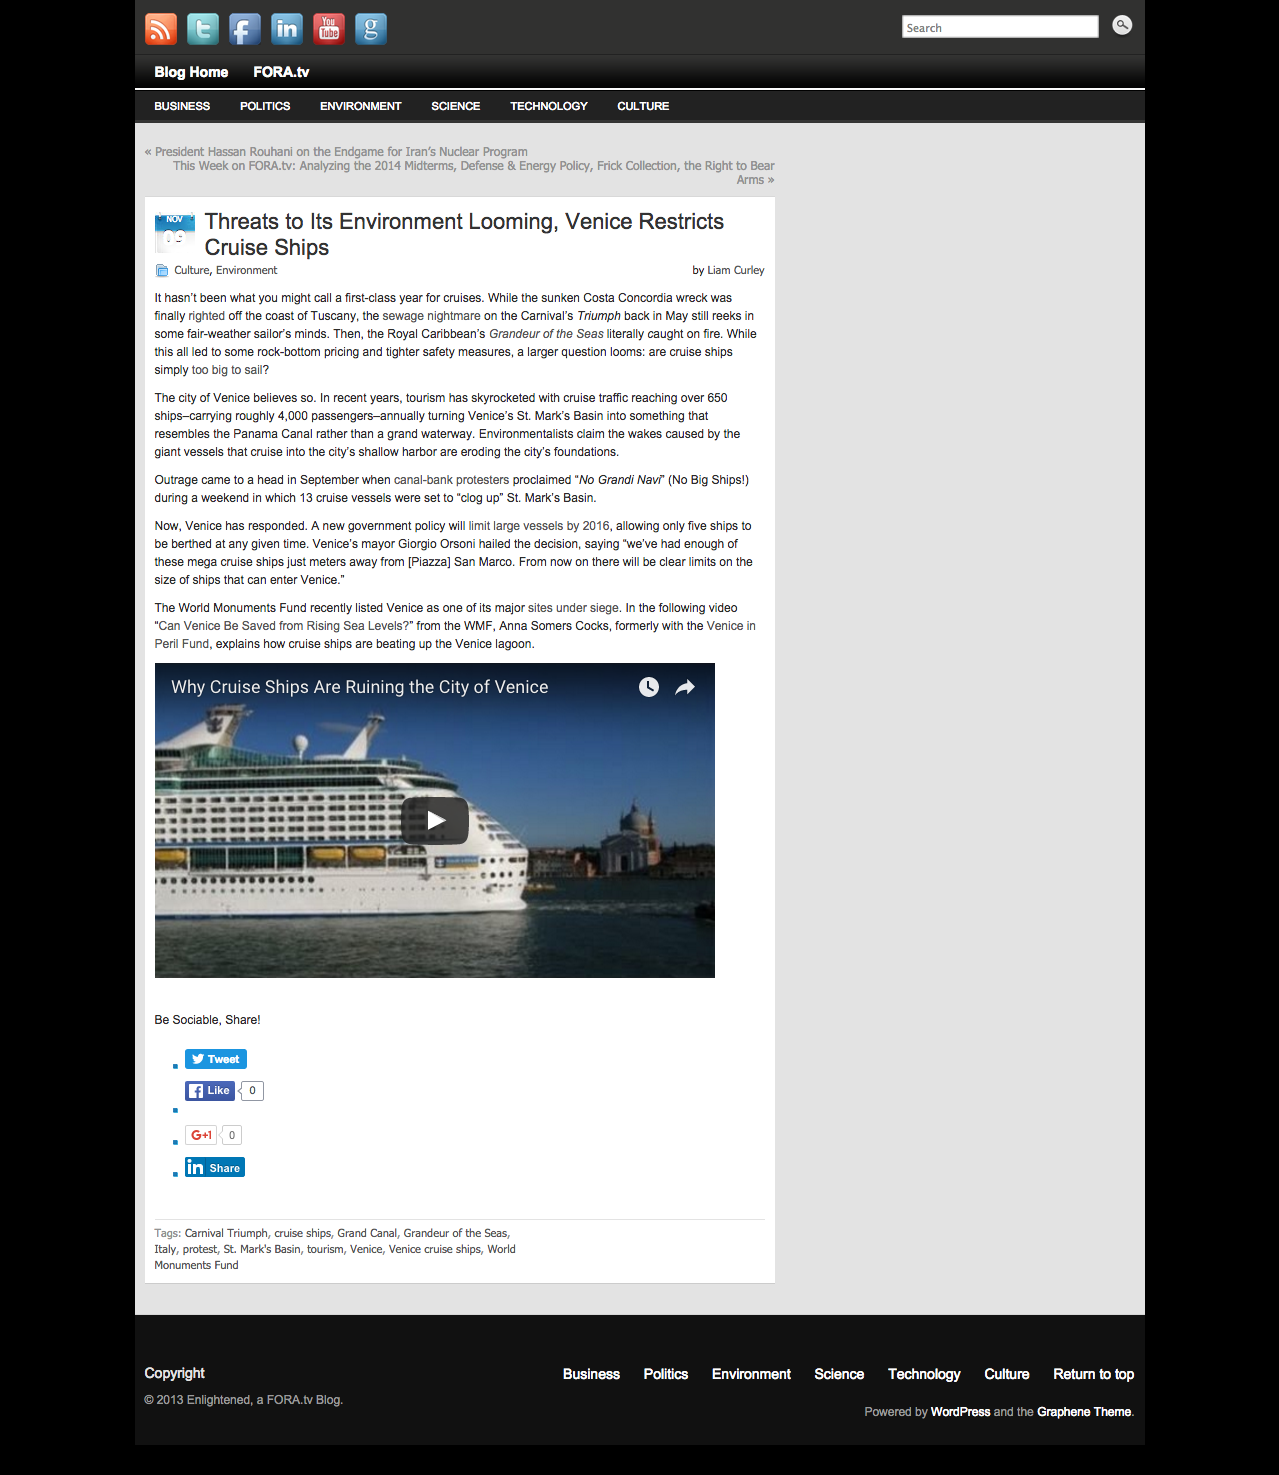 screencapture-enarchive-fora-tv-2013-11-threats-to-its-environment-looming-venice-restricts-cruise-ships.png